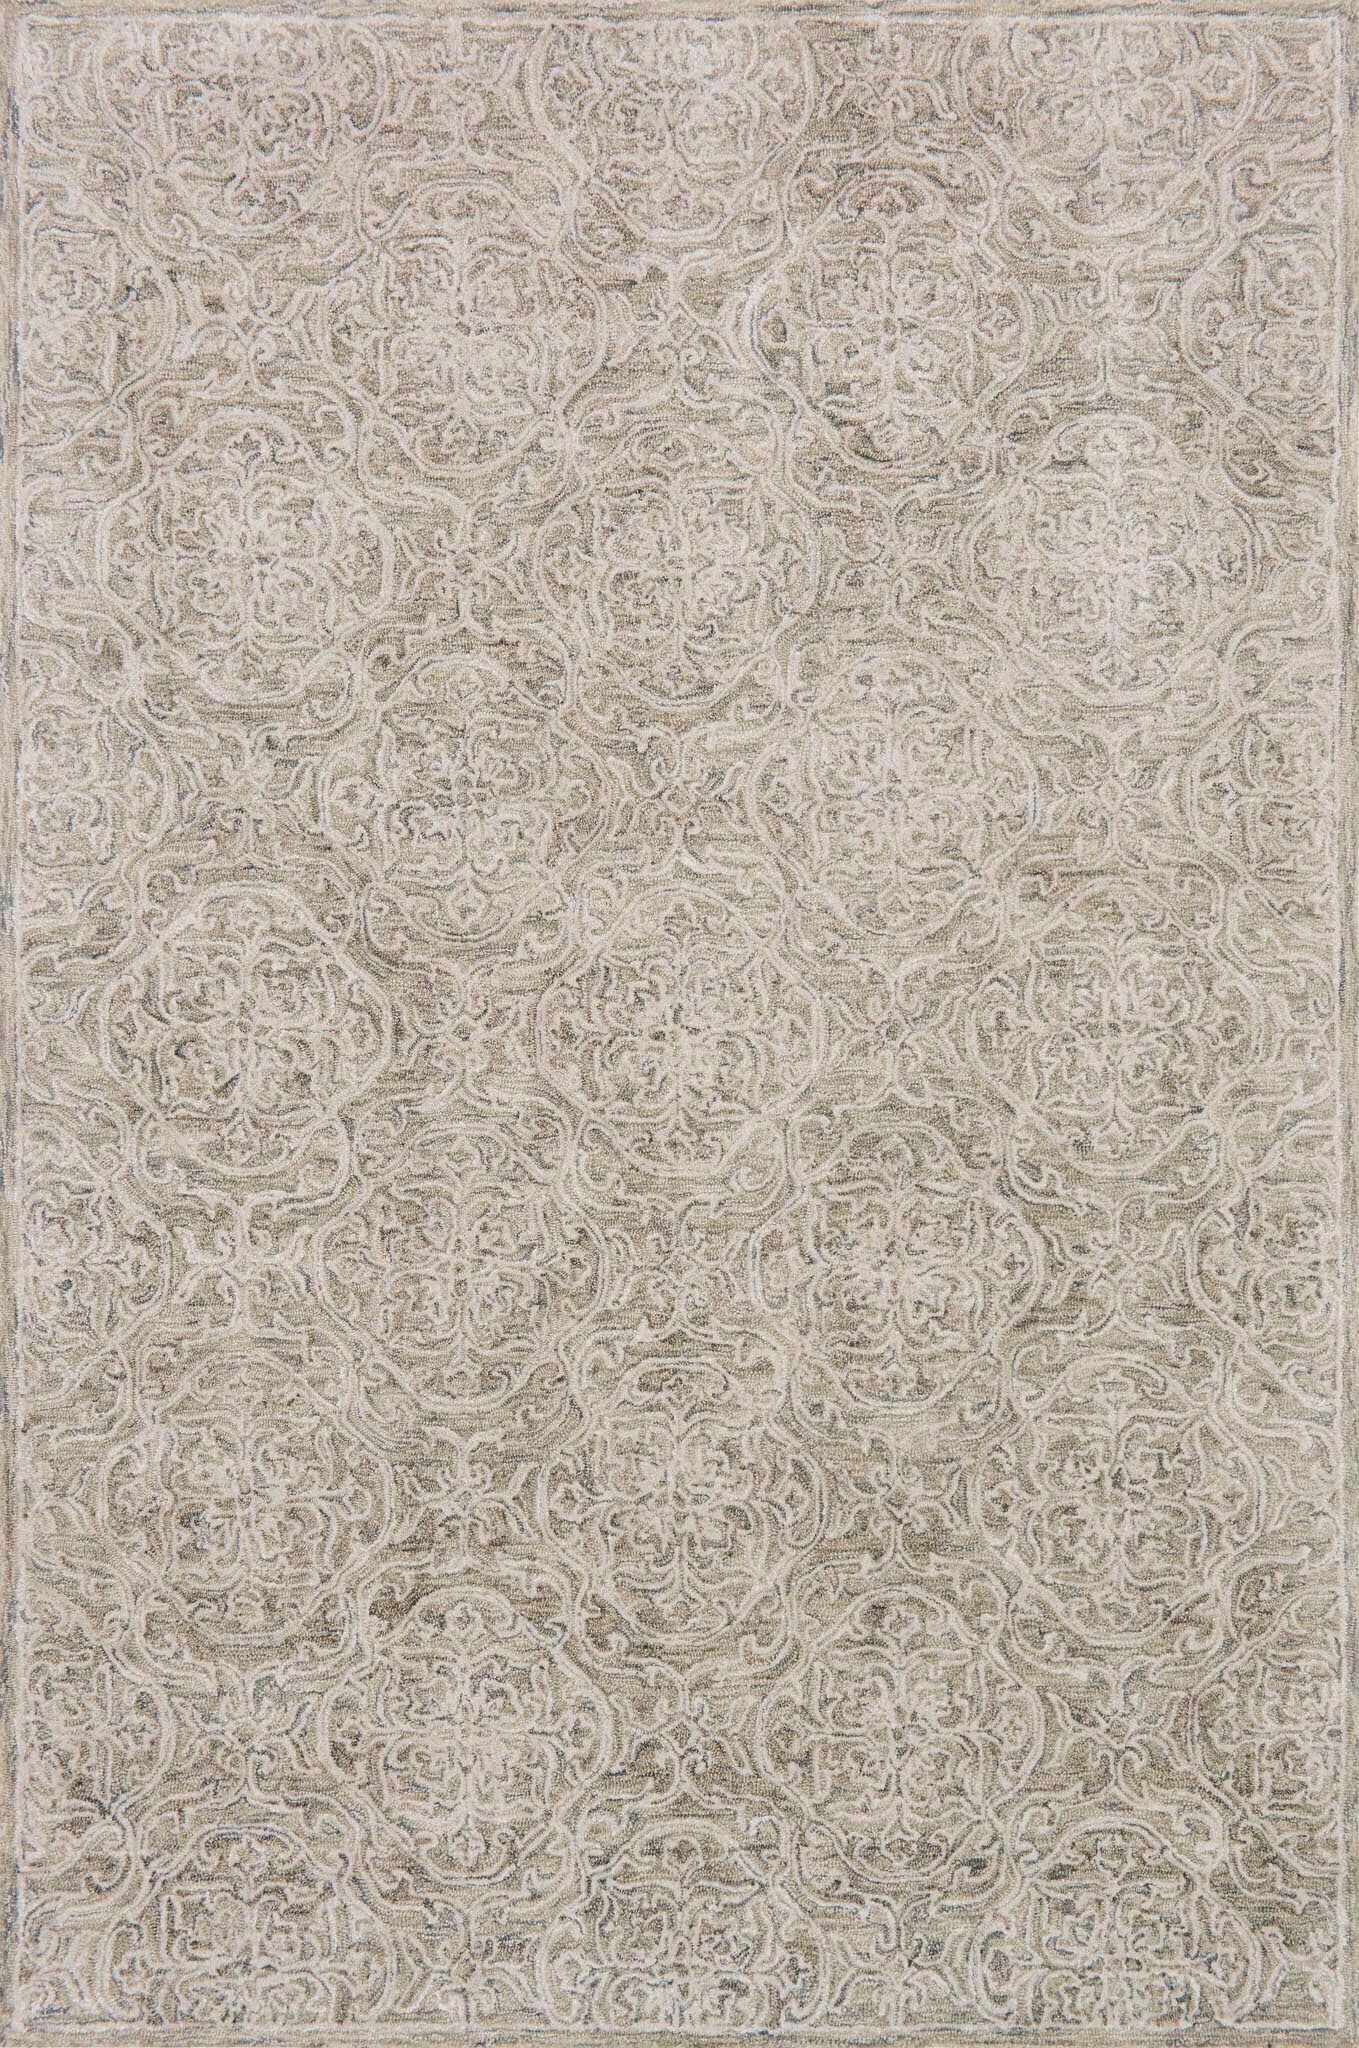 Firger Hand-Tufted Beige Area Rug Rug Size: Rectangle 5' x 7'6